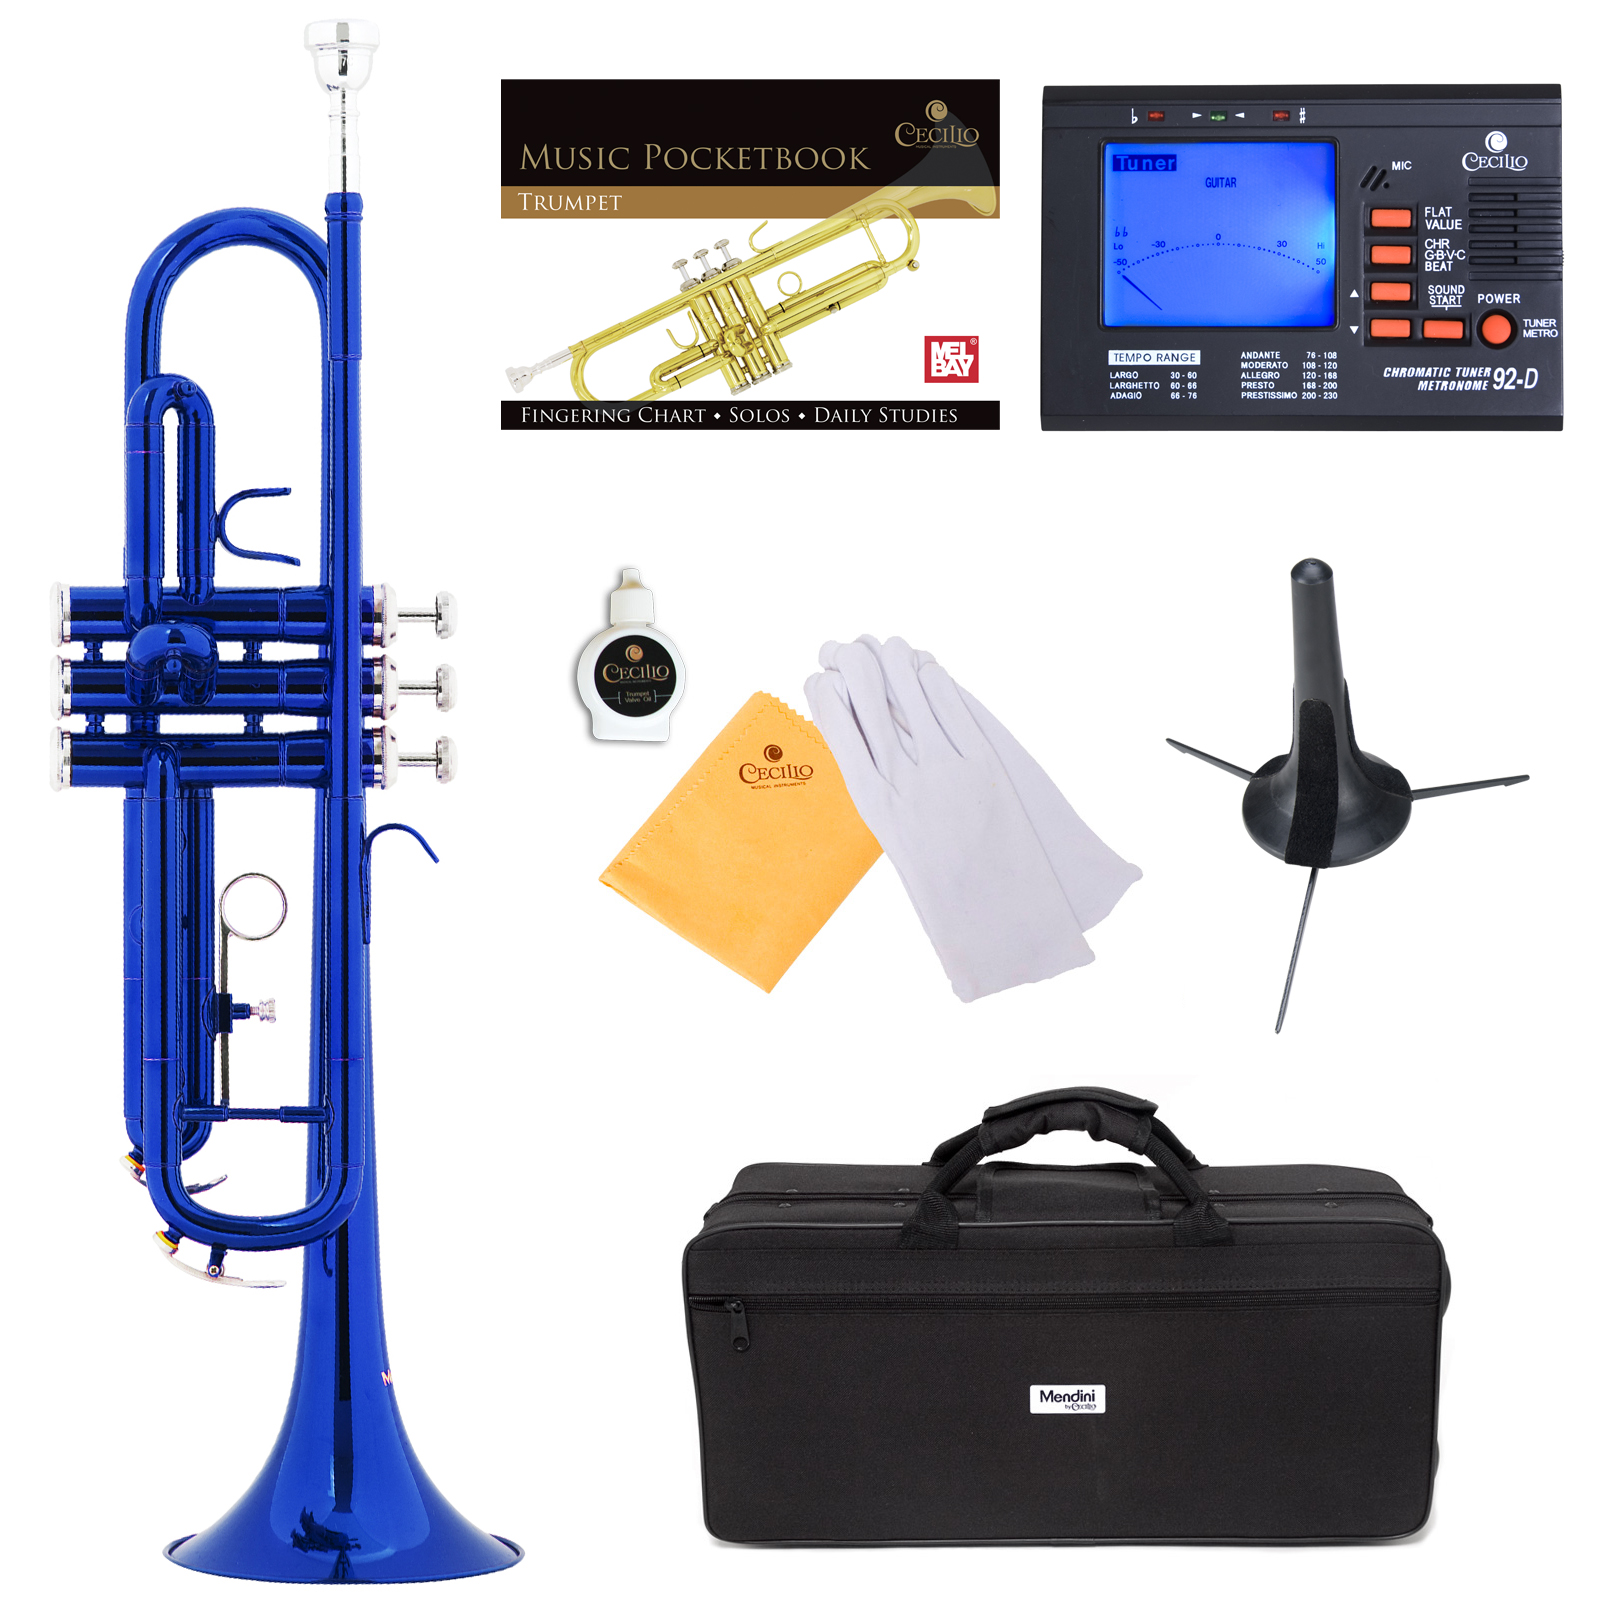 Mendini by Cecilio Bb Trumpet w/Tuner, Stand, Pocketbook, Deluxe Case and 1 Year Warranty, Blue Lacquer MTT-BL+SD+PB+92D